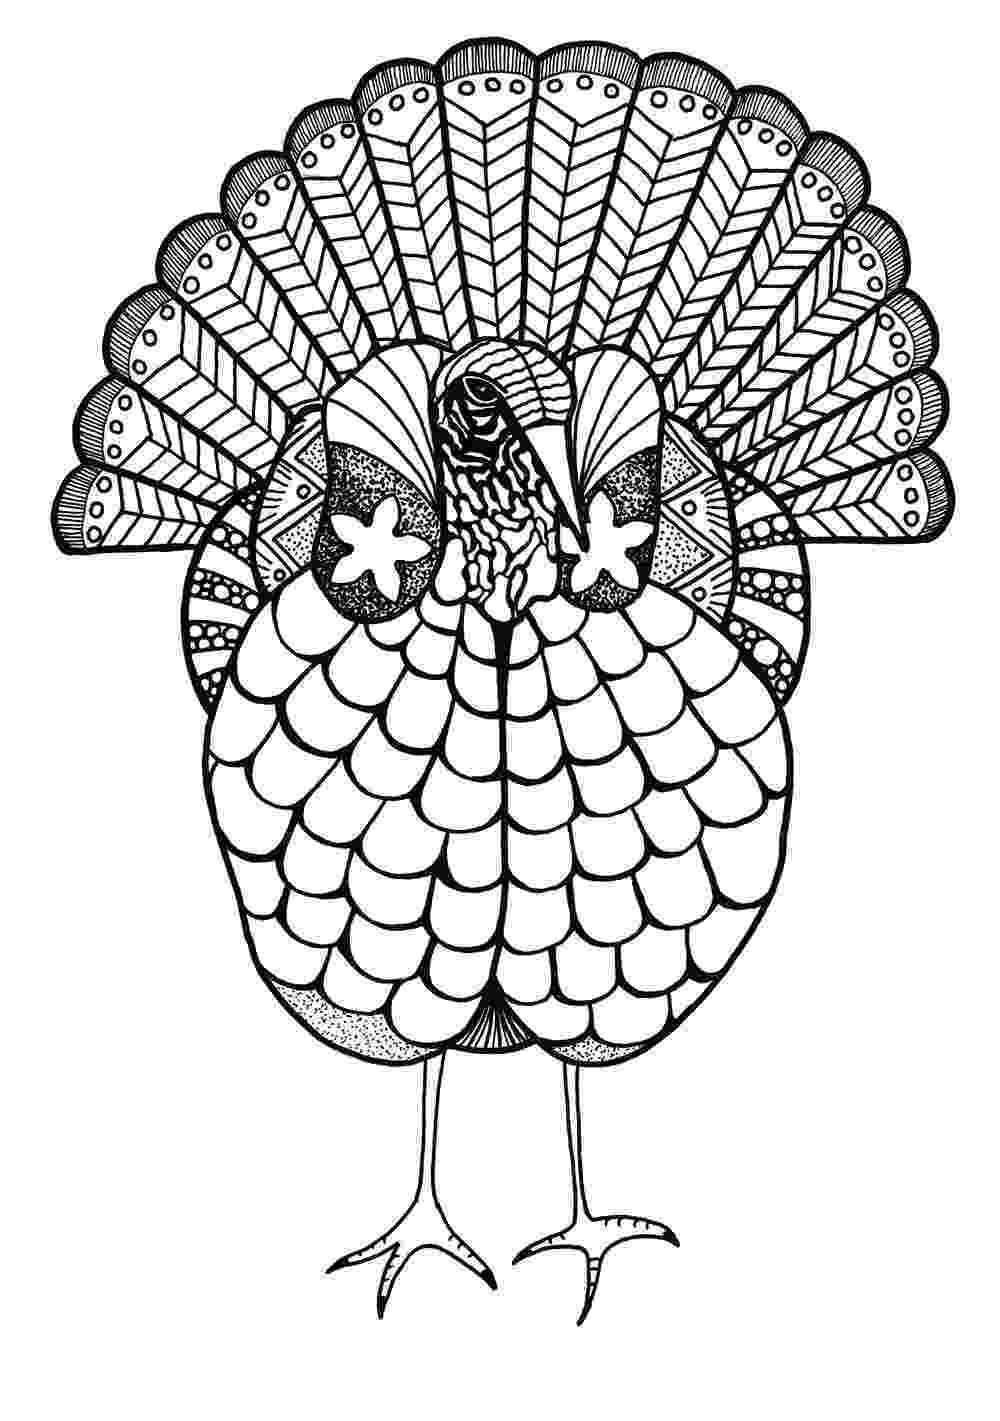 colouring pages adults colorful turkey adult coloring page favecraftscom adults colouring pages